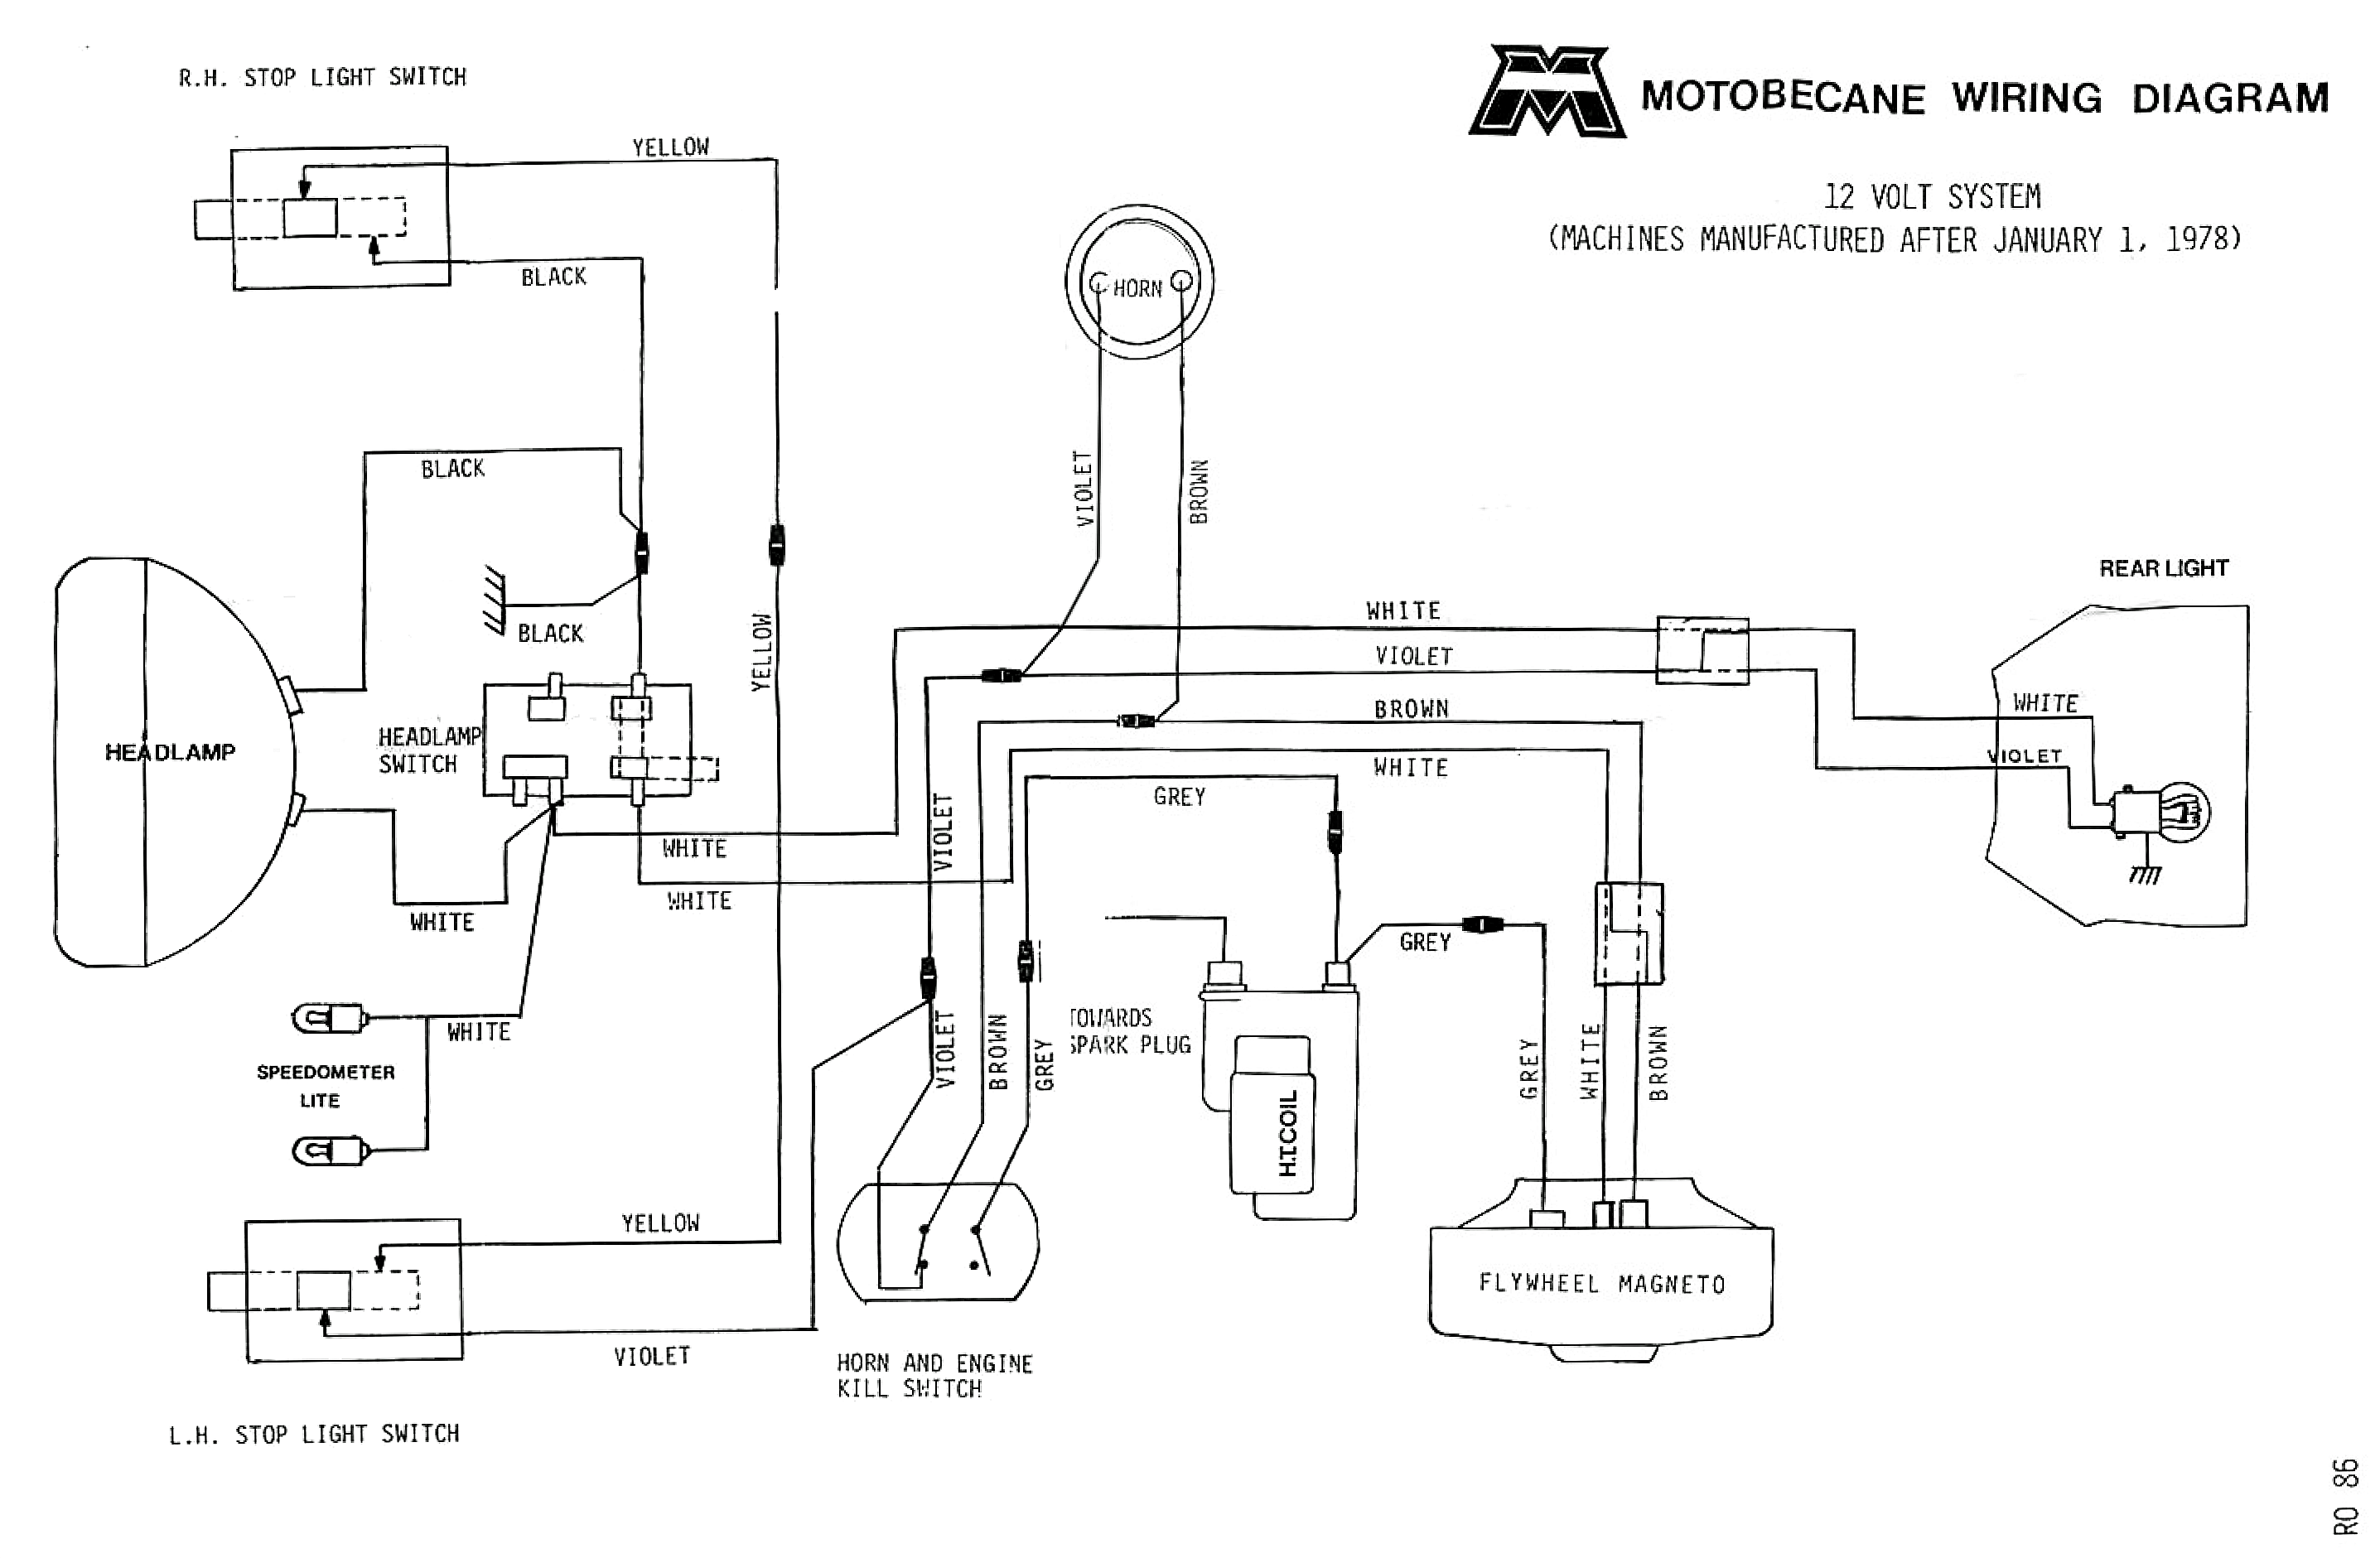 Motobecane12v_wiring_diagram motobecane wiring diagrams moped wiki 12 volt wire diagram at readyjetset.co